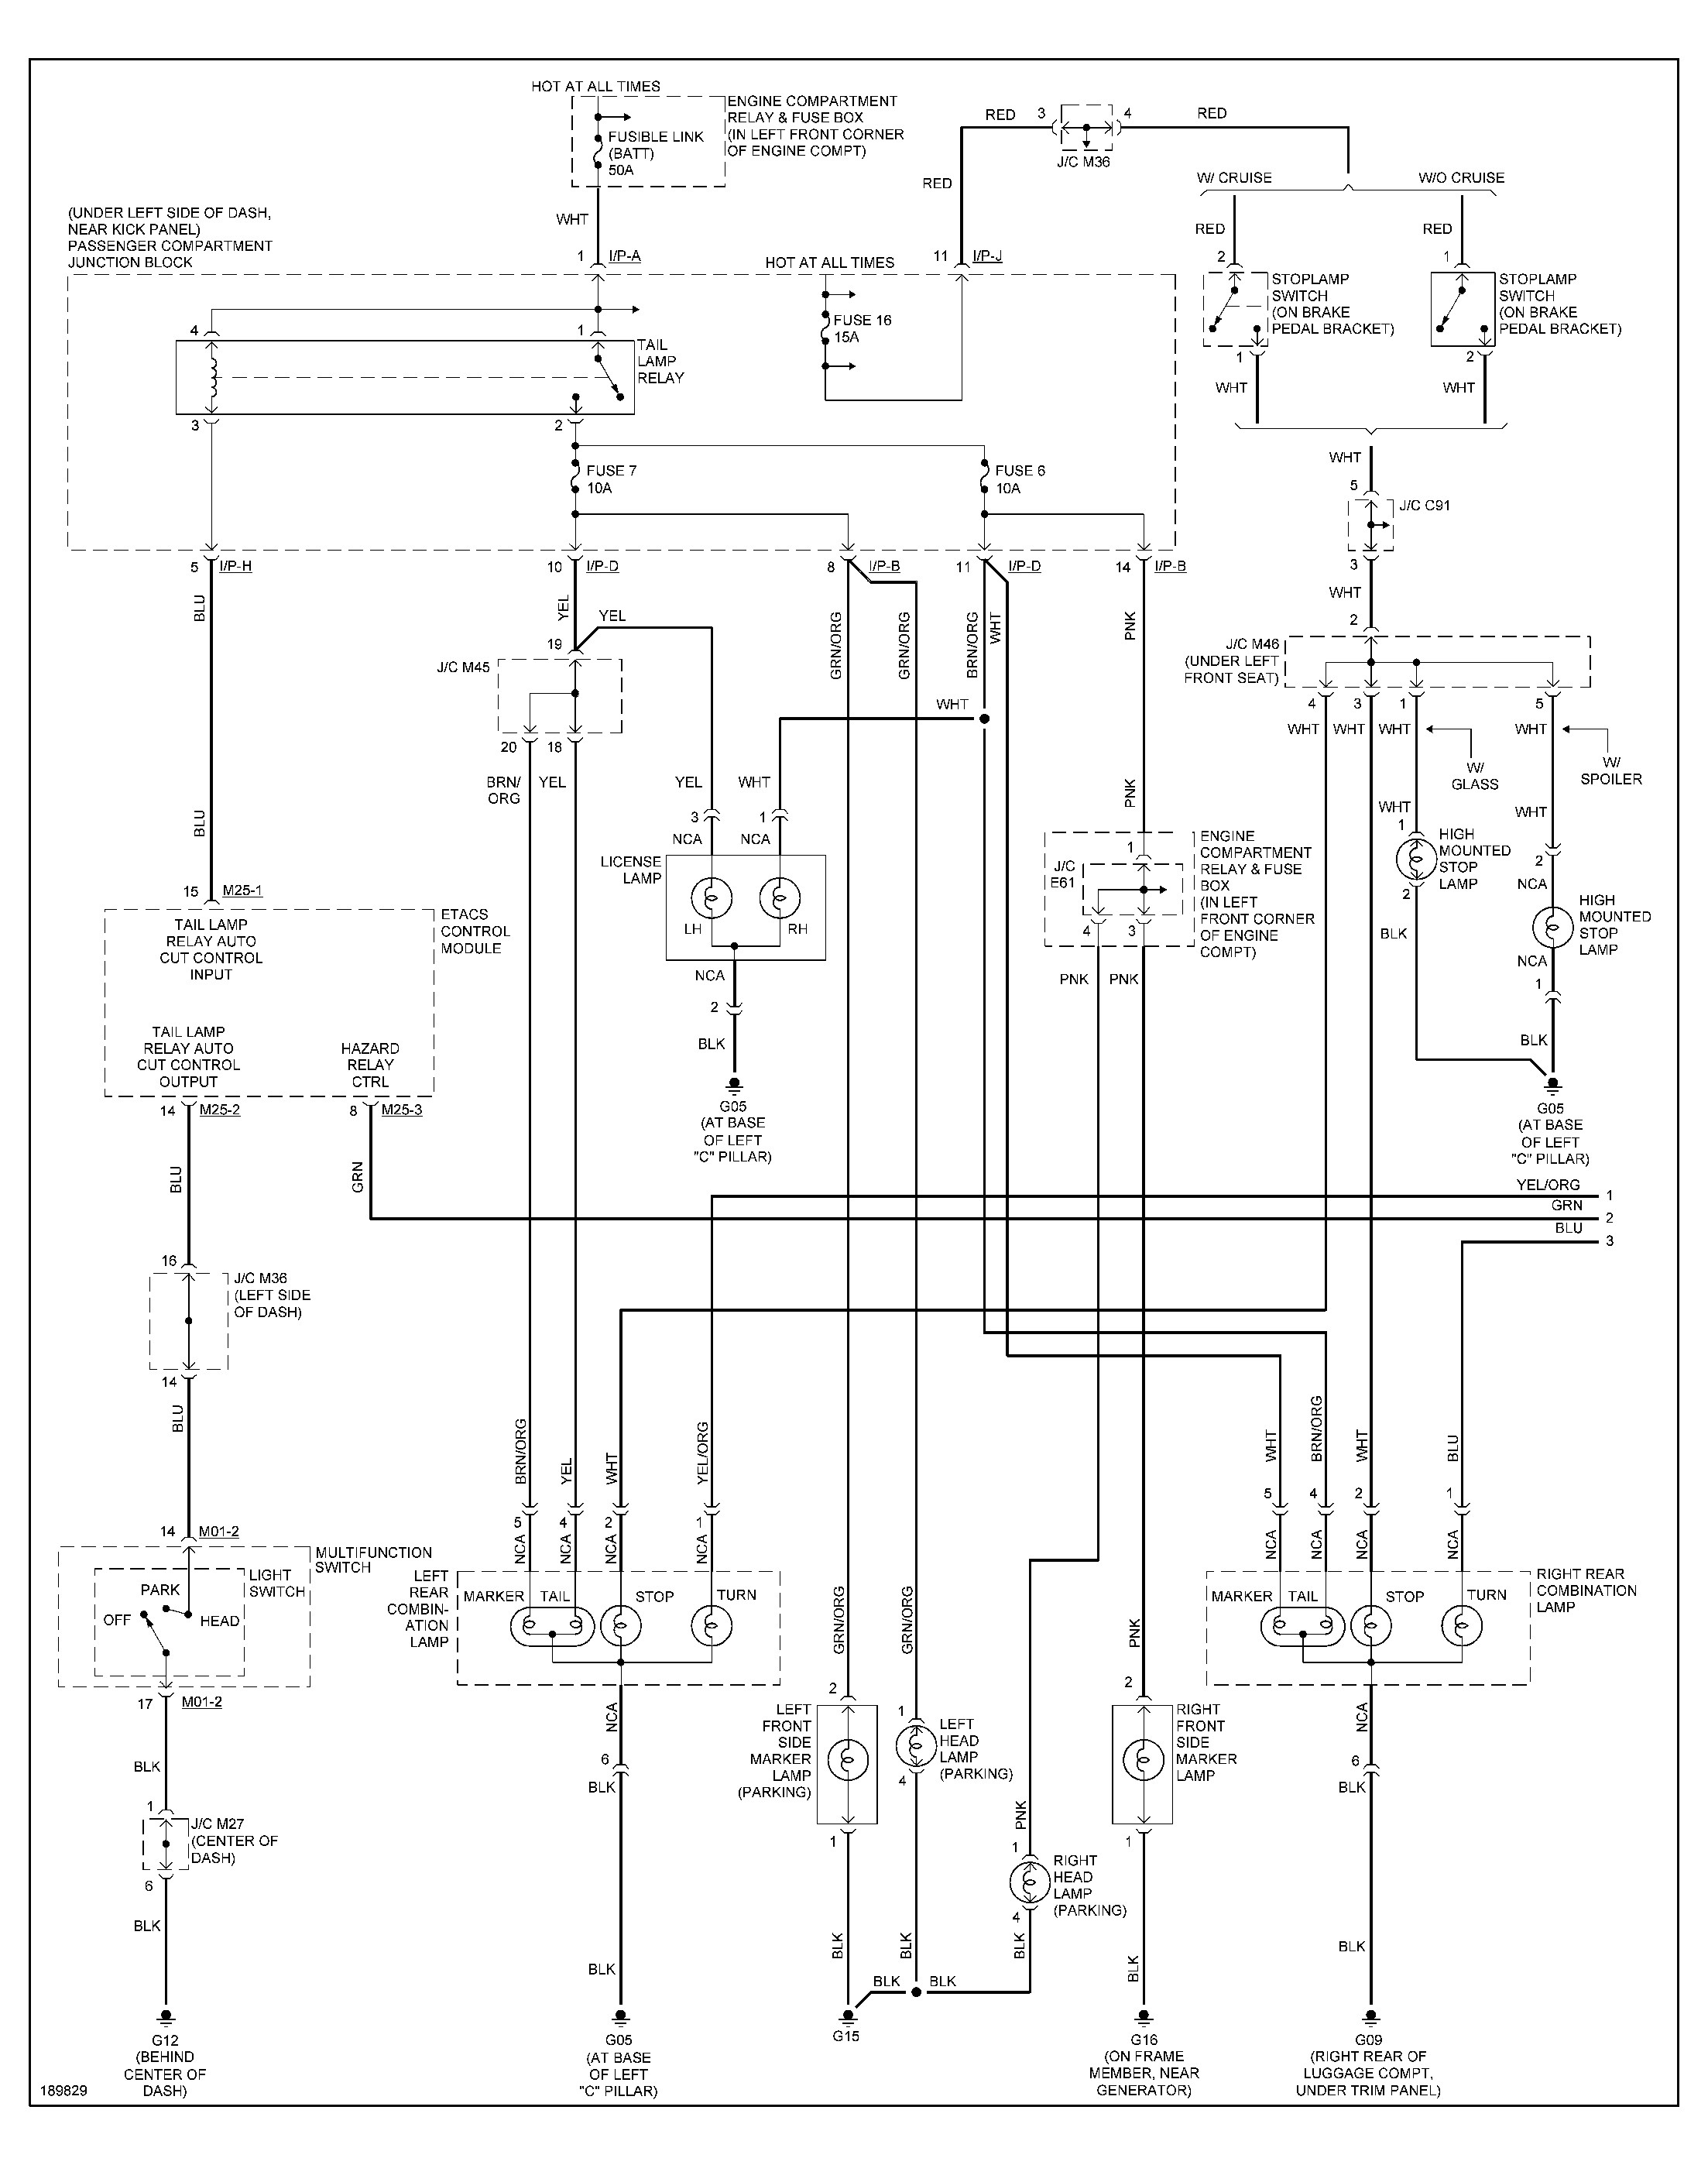 Diagram Nest Wiring Diagram For Carrier Infinity Full Version Hd Quality Carrier Infinity Ductdiagram Eyepower It